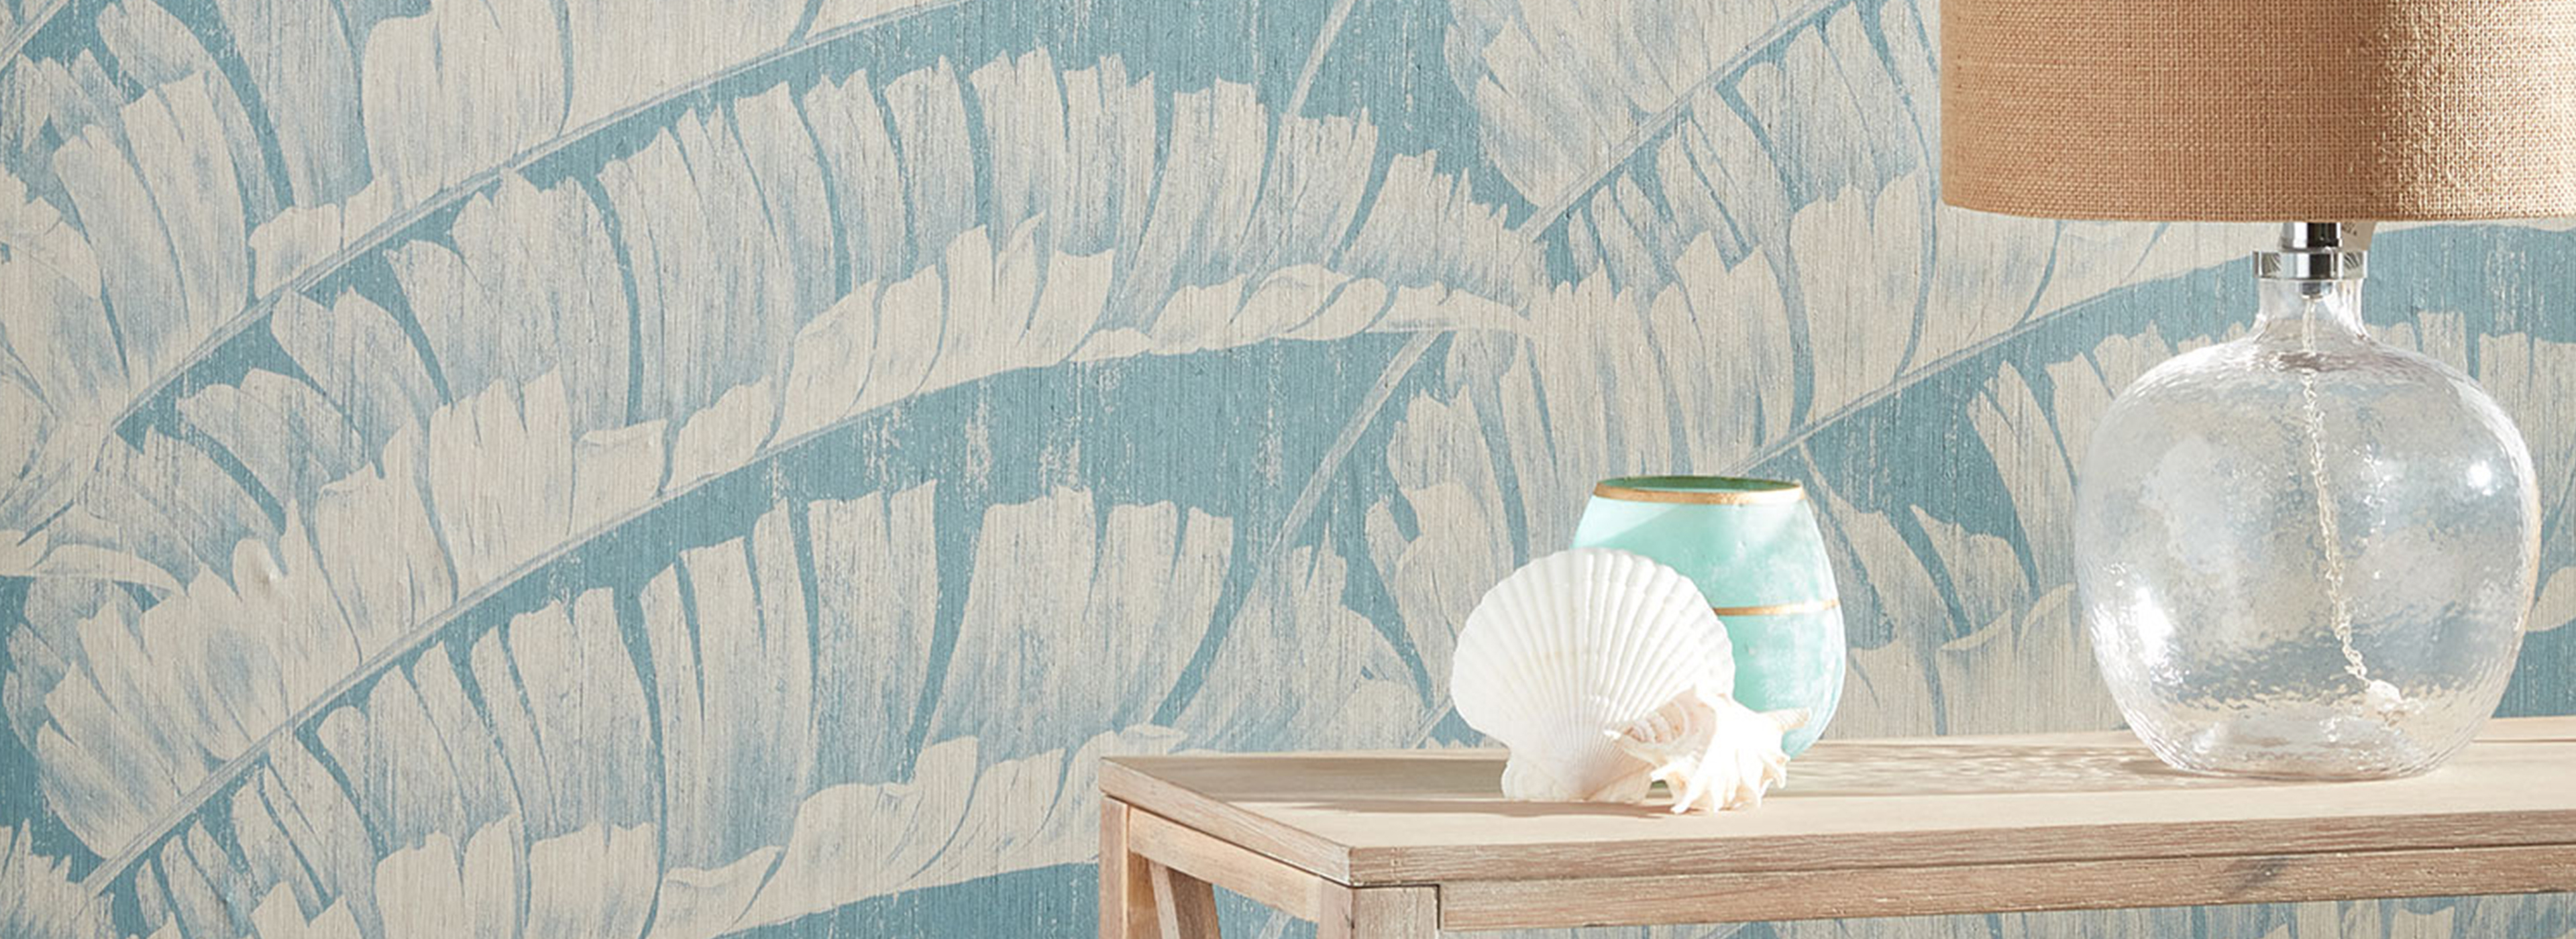 Pawley's Island Texture Wallcovering from LEVEY Commercial and Architectural Finishes